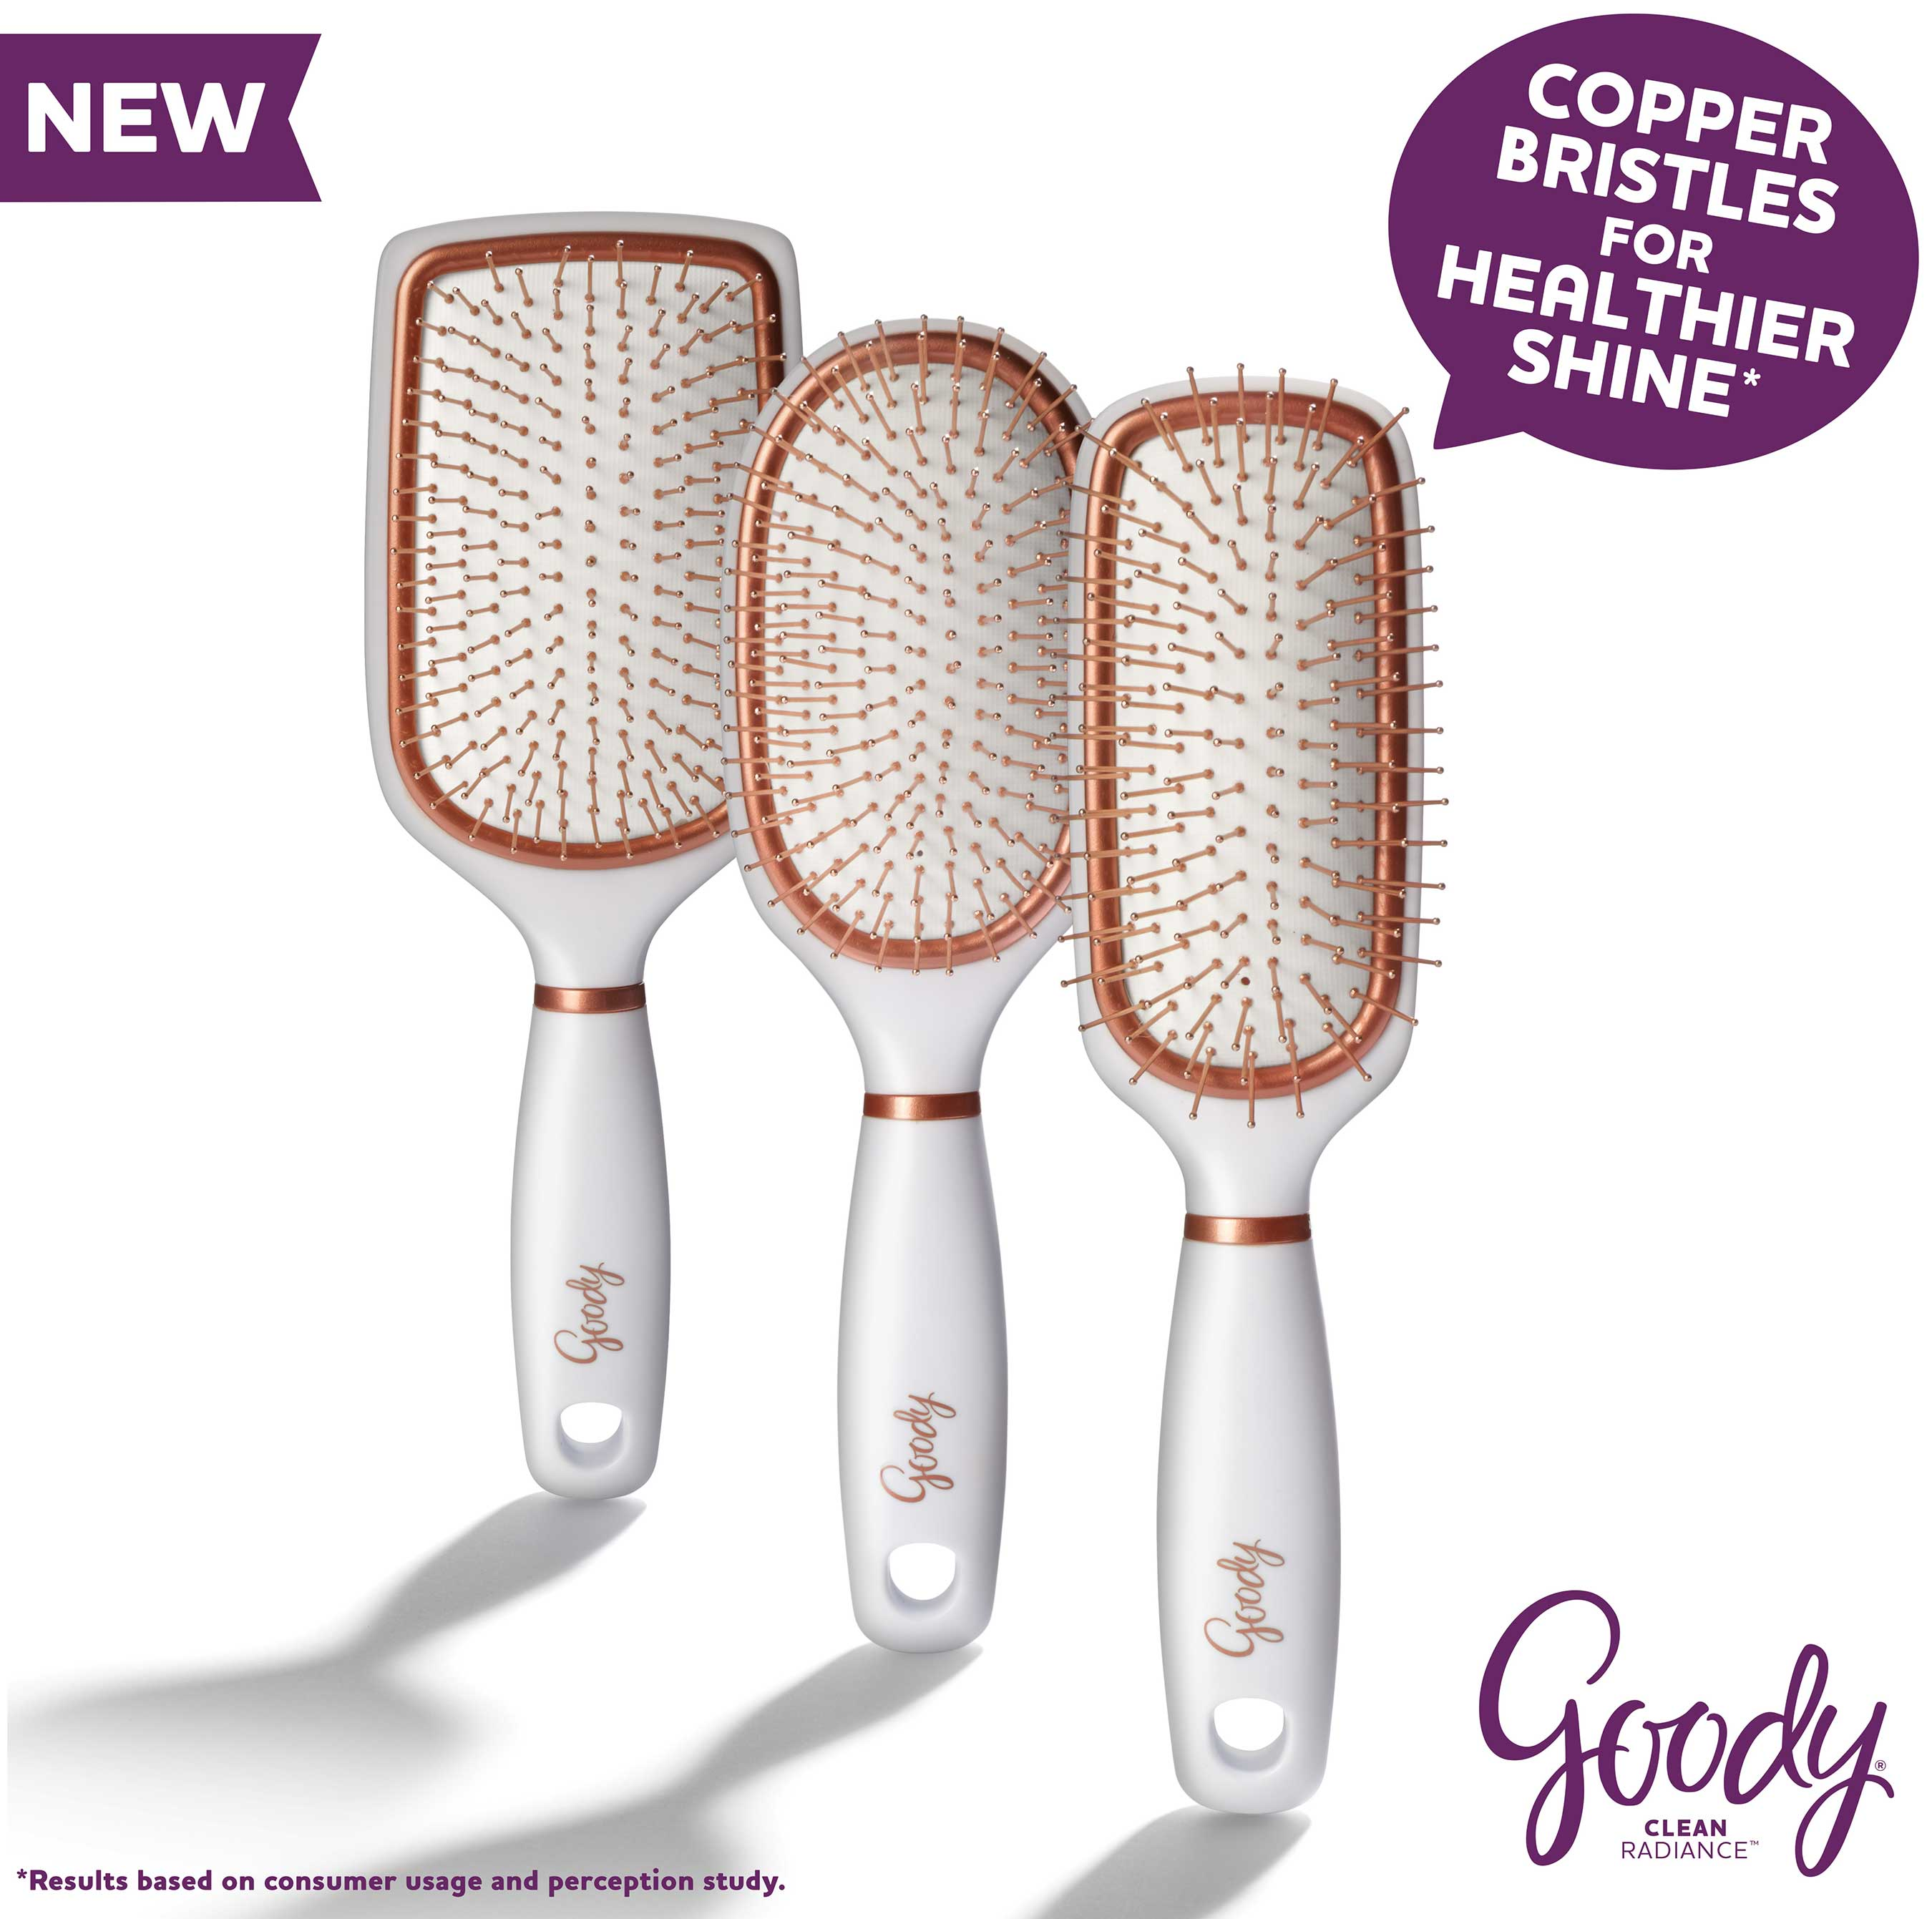 Copper bristles massage the scalp and work through the hair to reduce buildup that occurs in hair over time, ...